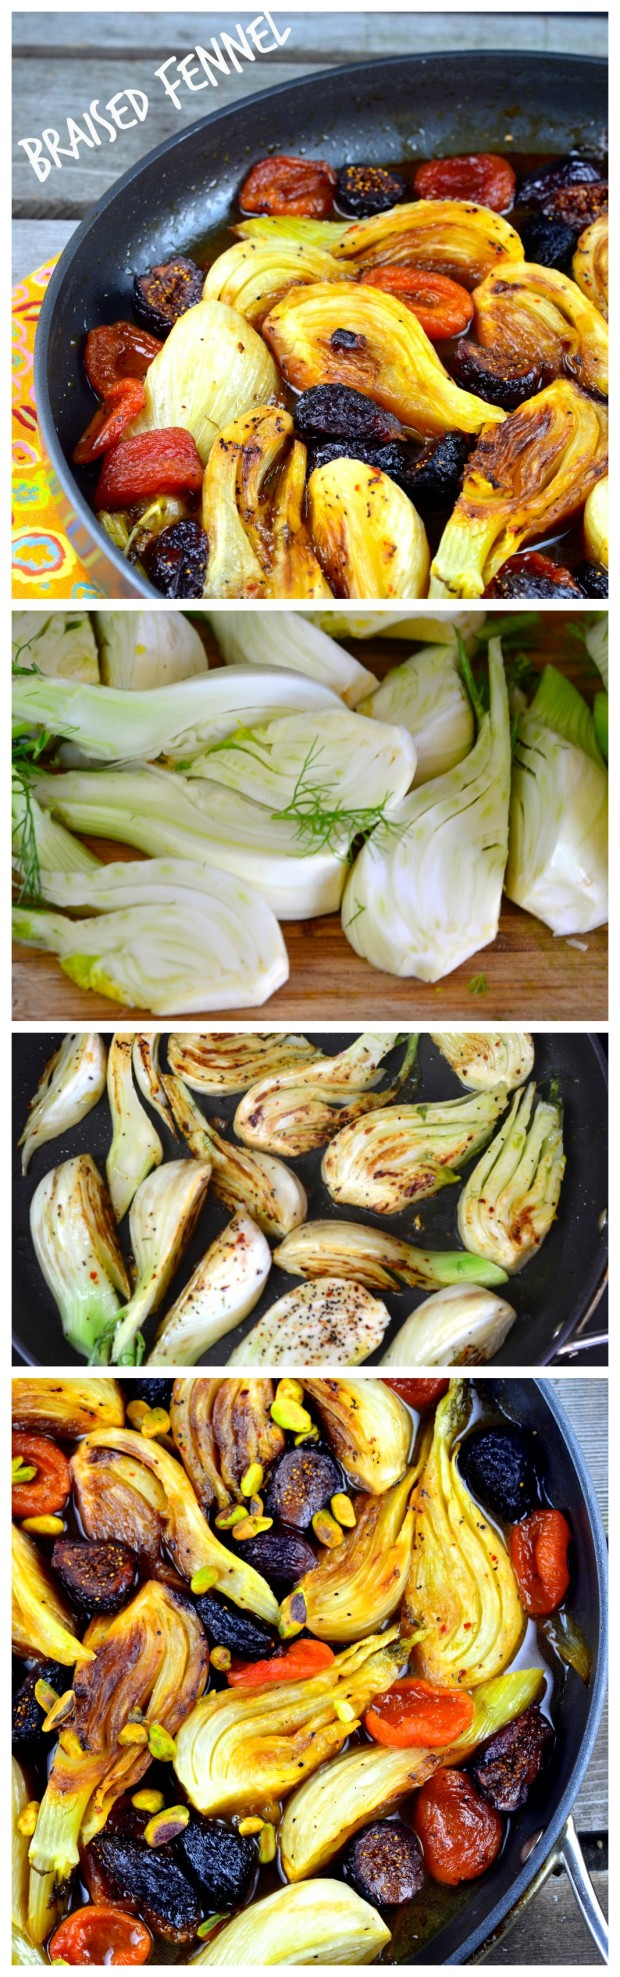 This Braised Fennel with Apricots and figs, brings a nice combination of sweet and savory deliciousness. A side dish that will sure impress your guests. Vegan and Gluten Free. #passover #GlutenFree #Side #Vegan #holiday #Fennel #recipe